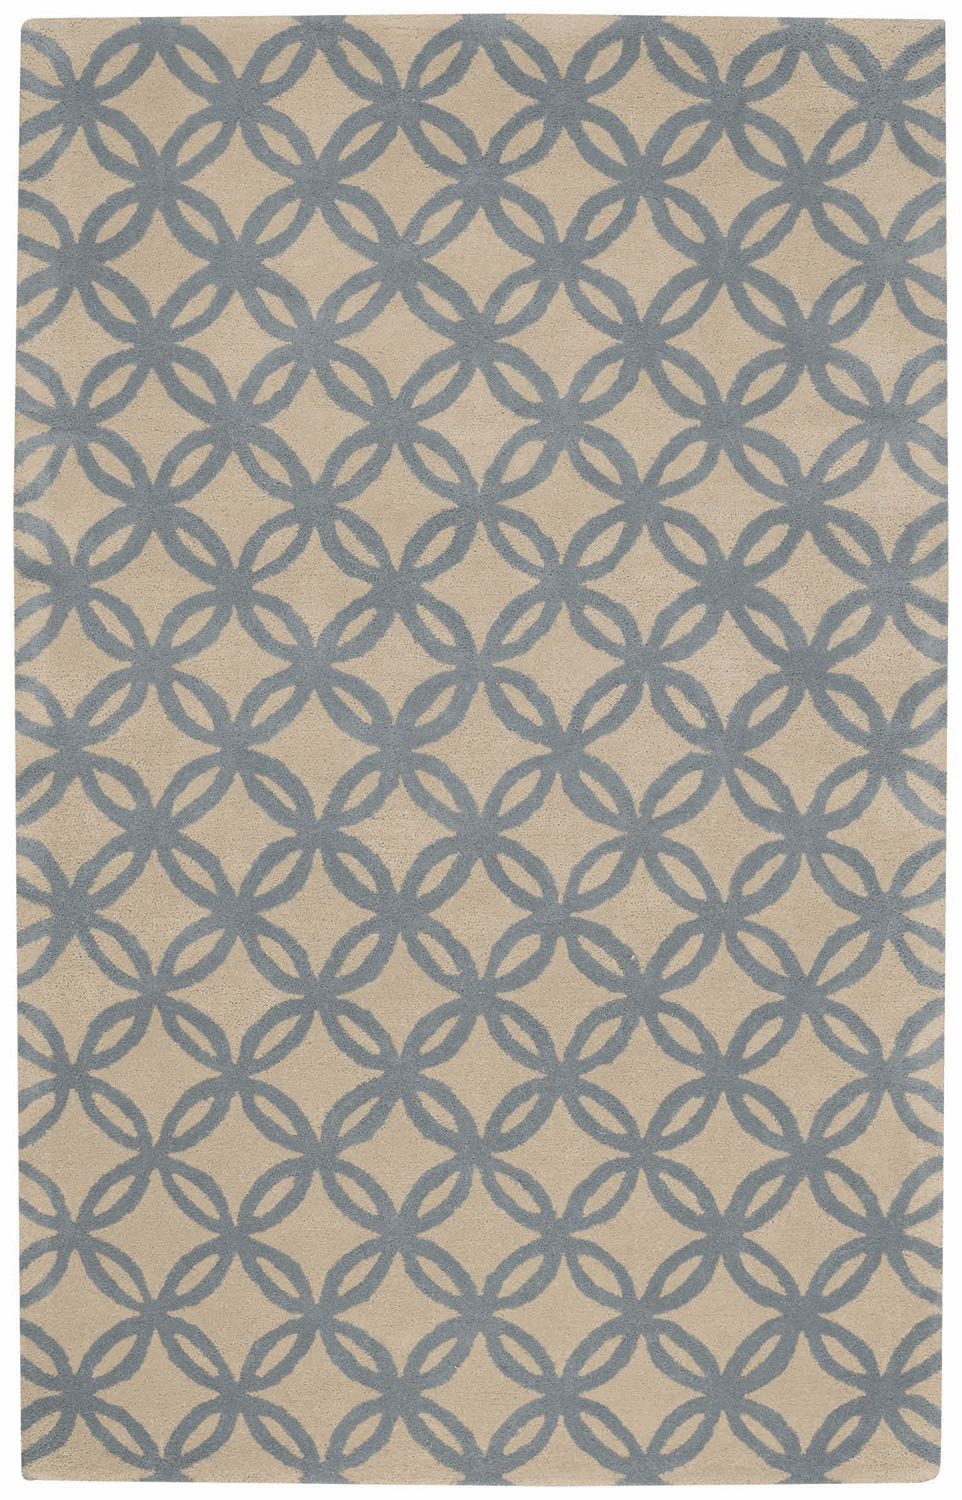 Hand Tufted Blue Sky Rug